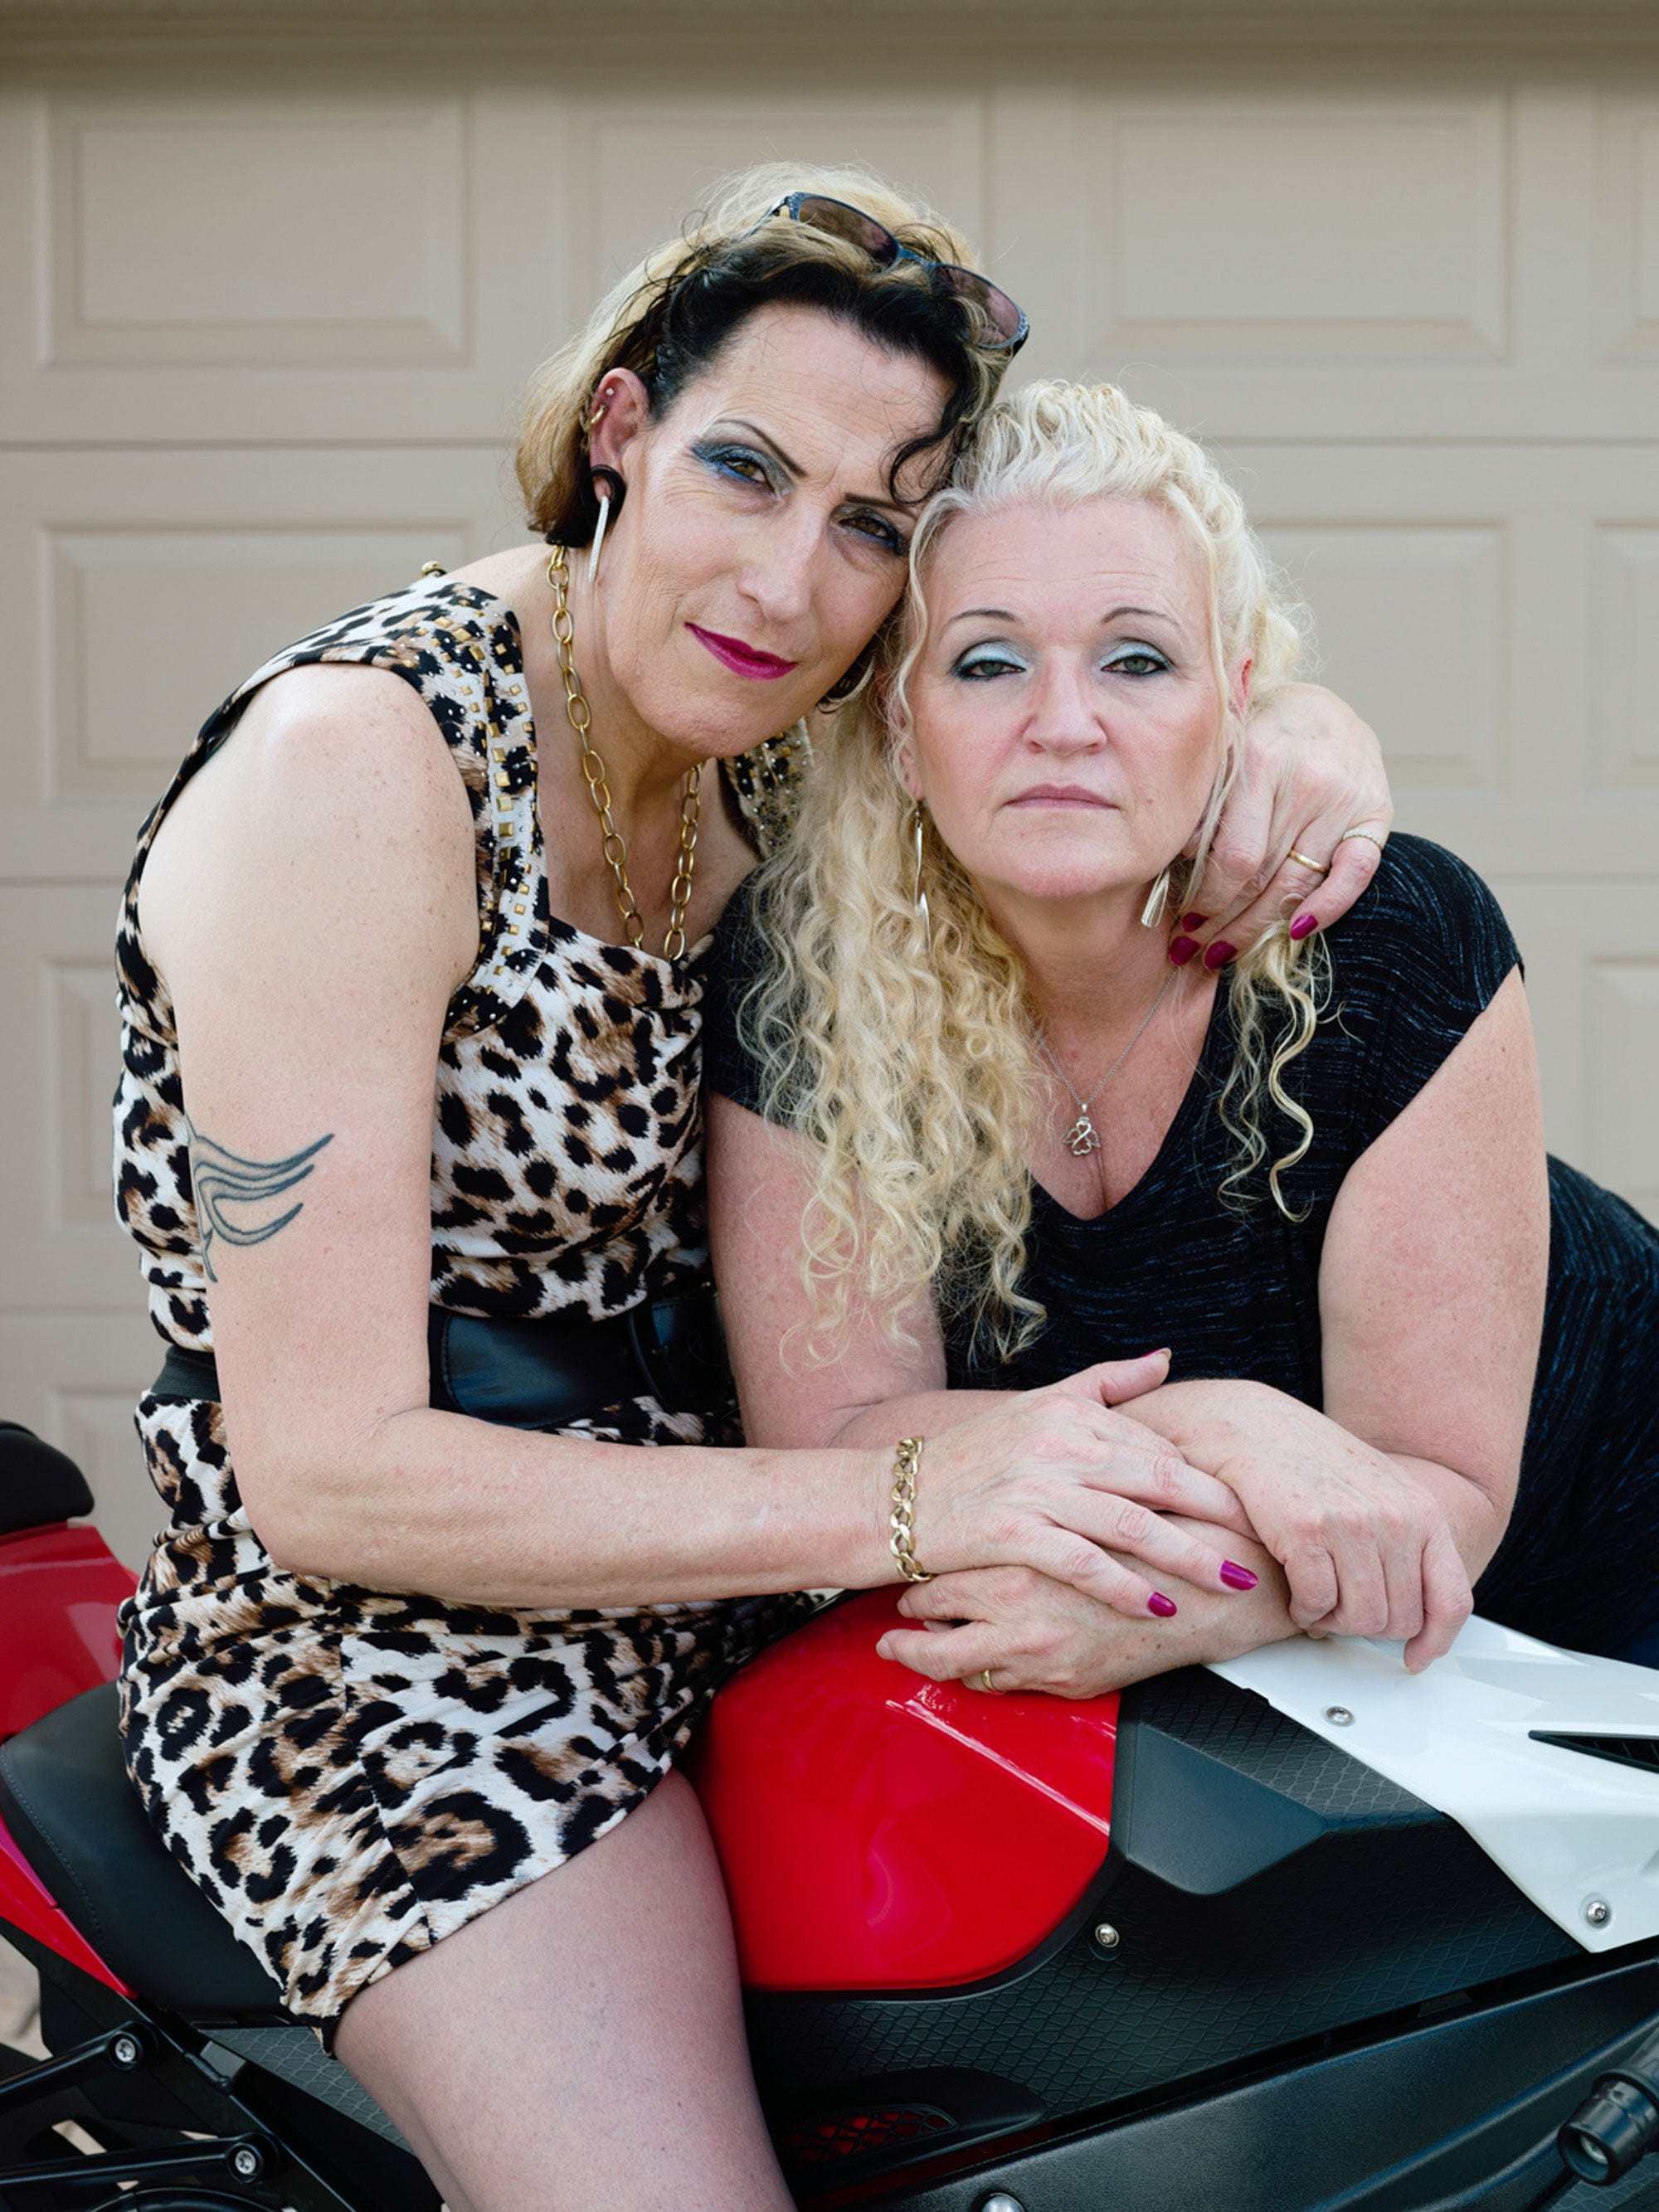 These Photos Of Older Trans People Are An Emotional & Crucial Part Of Queer History